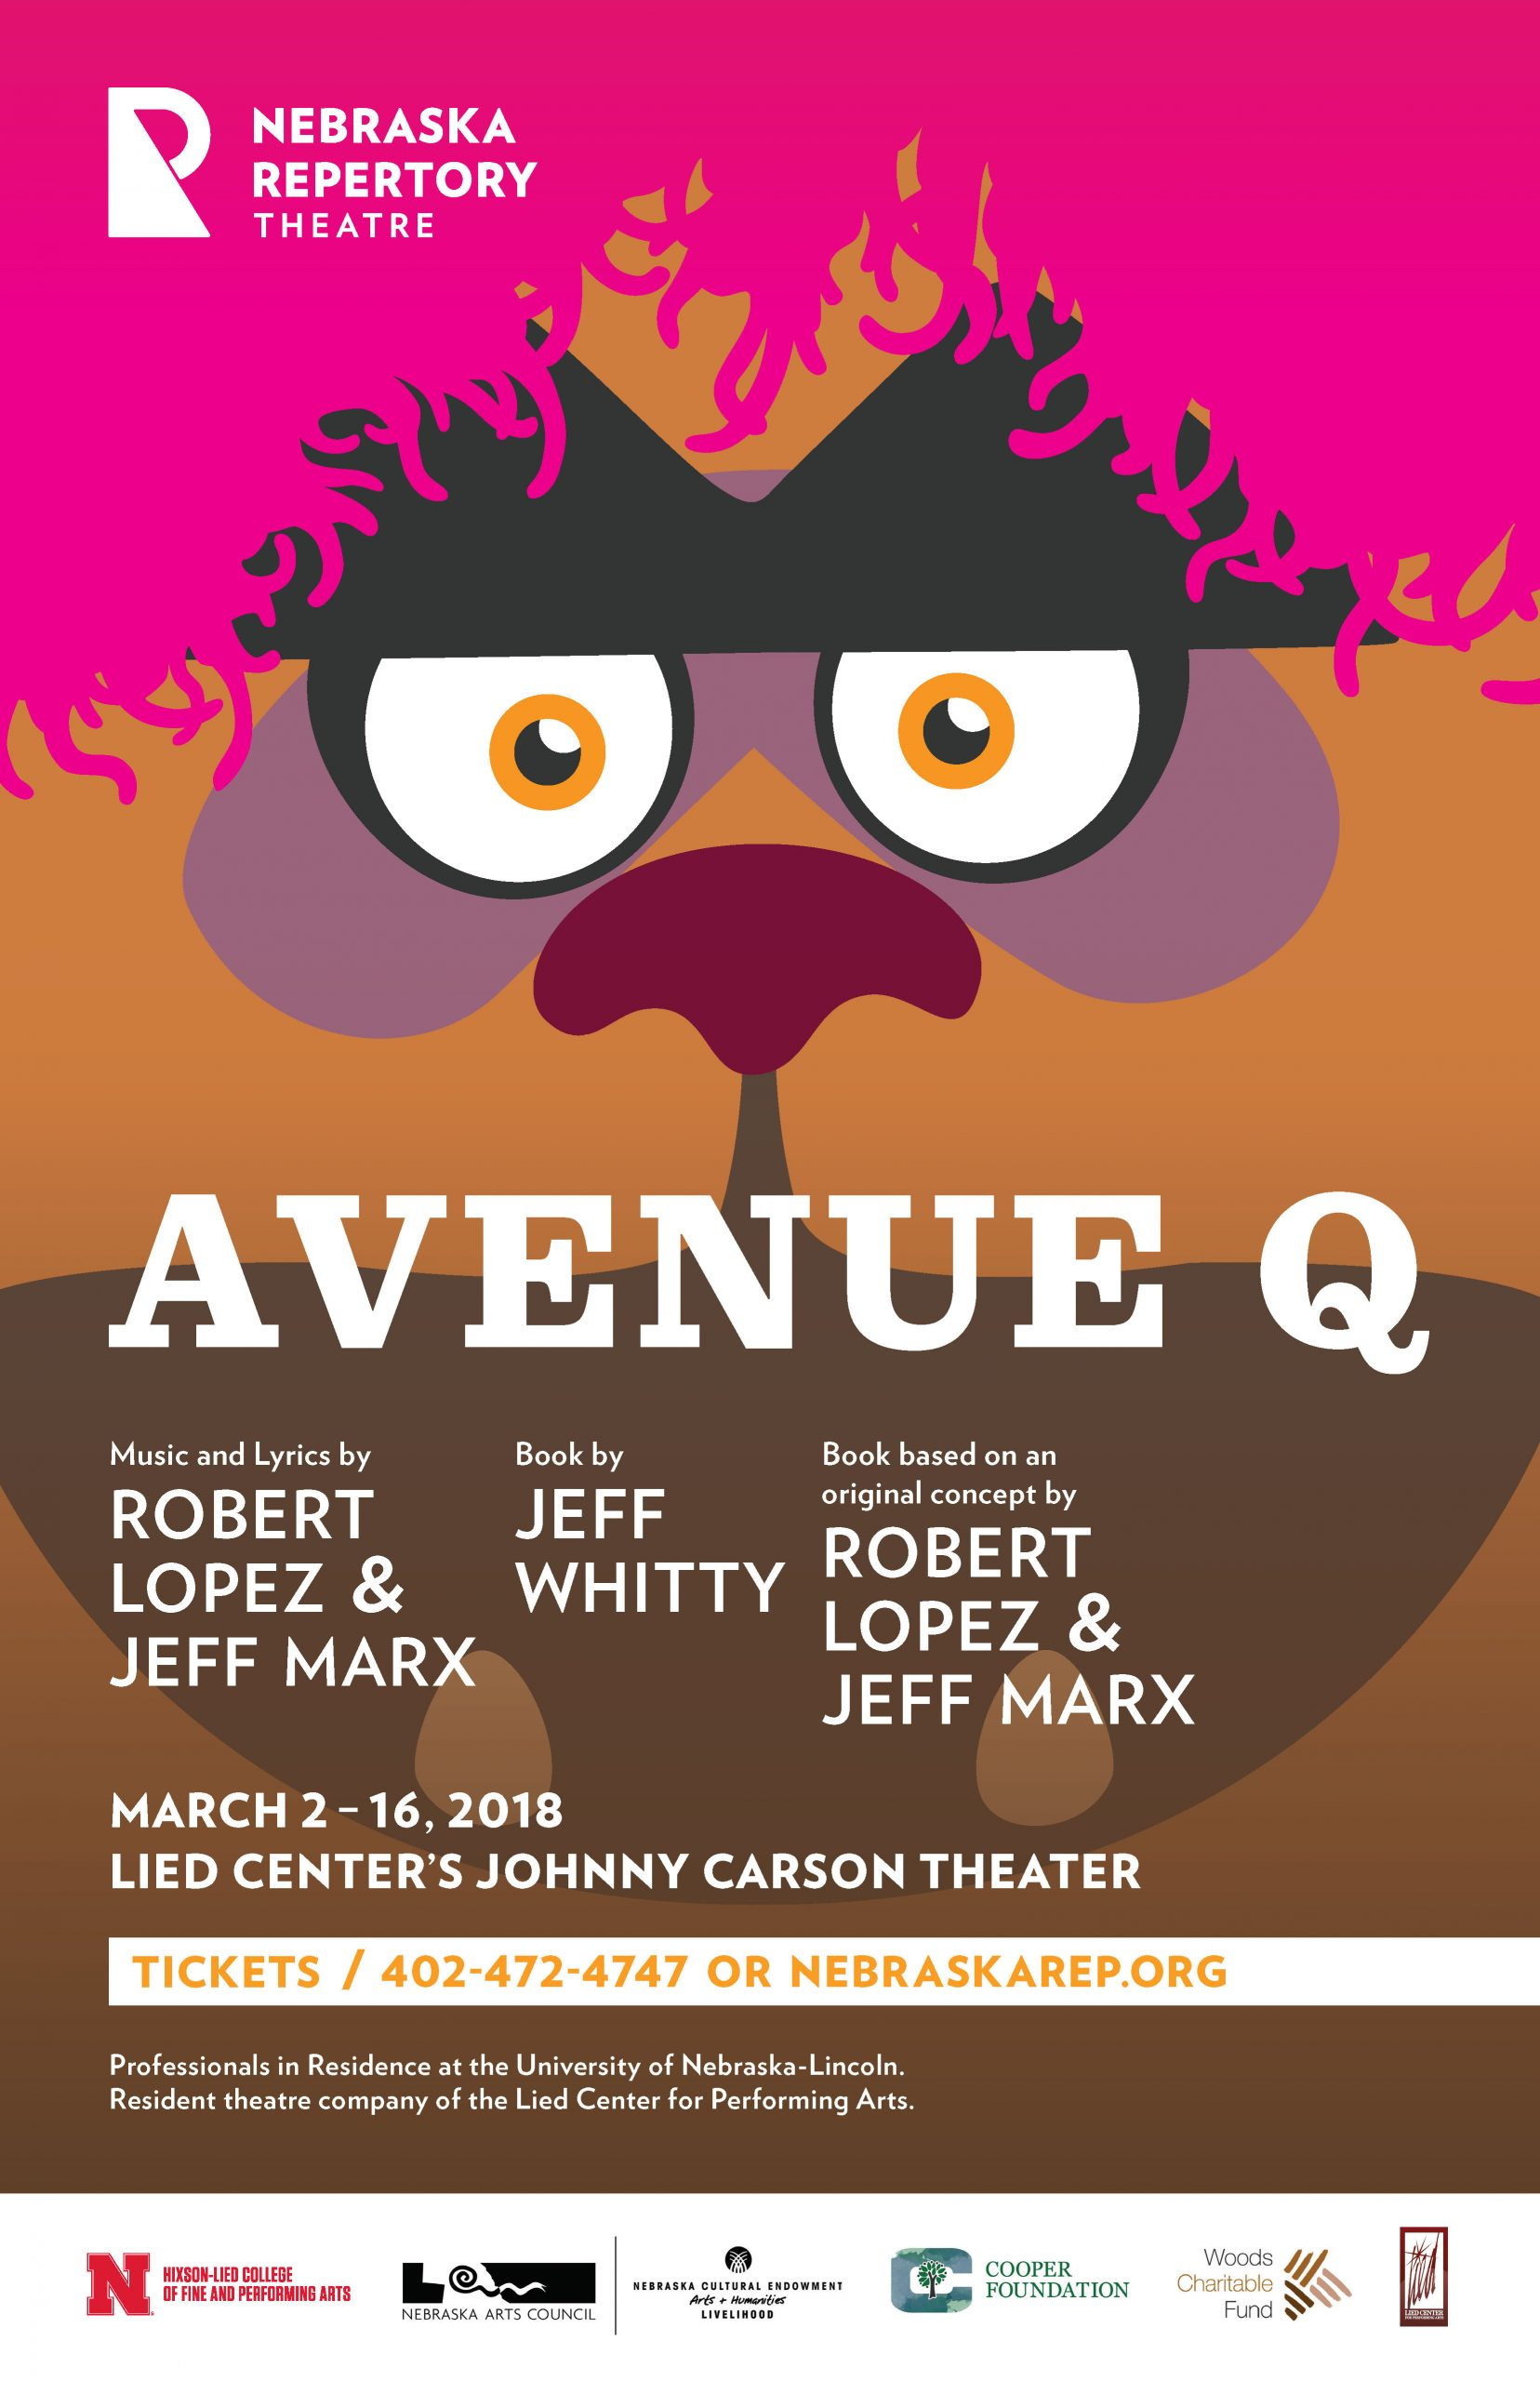 """The title """"Avenue Q"""" is overlaid over the large stylized illustration of a muppet face with googly eyes and bright pink hair."""